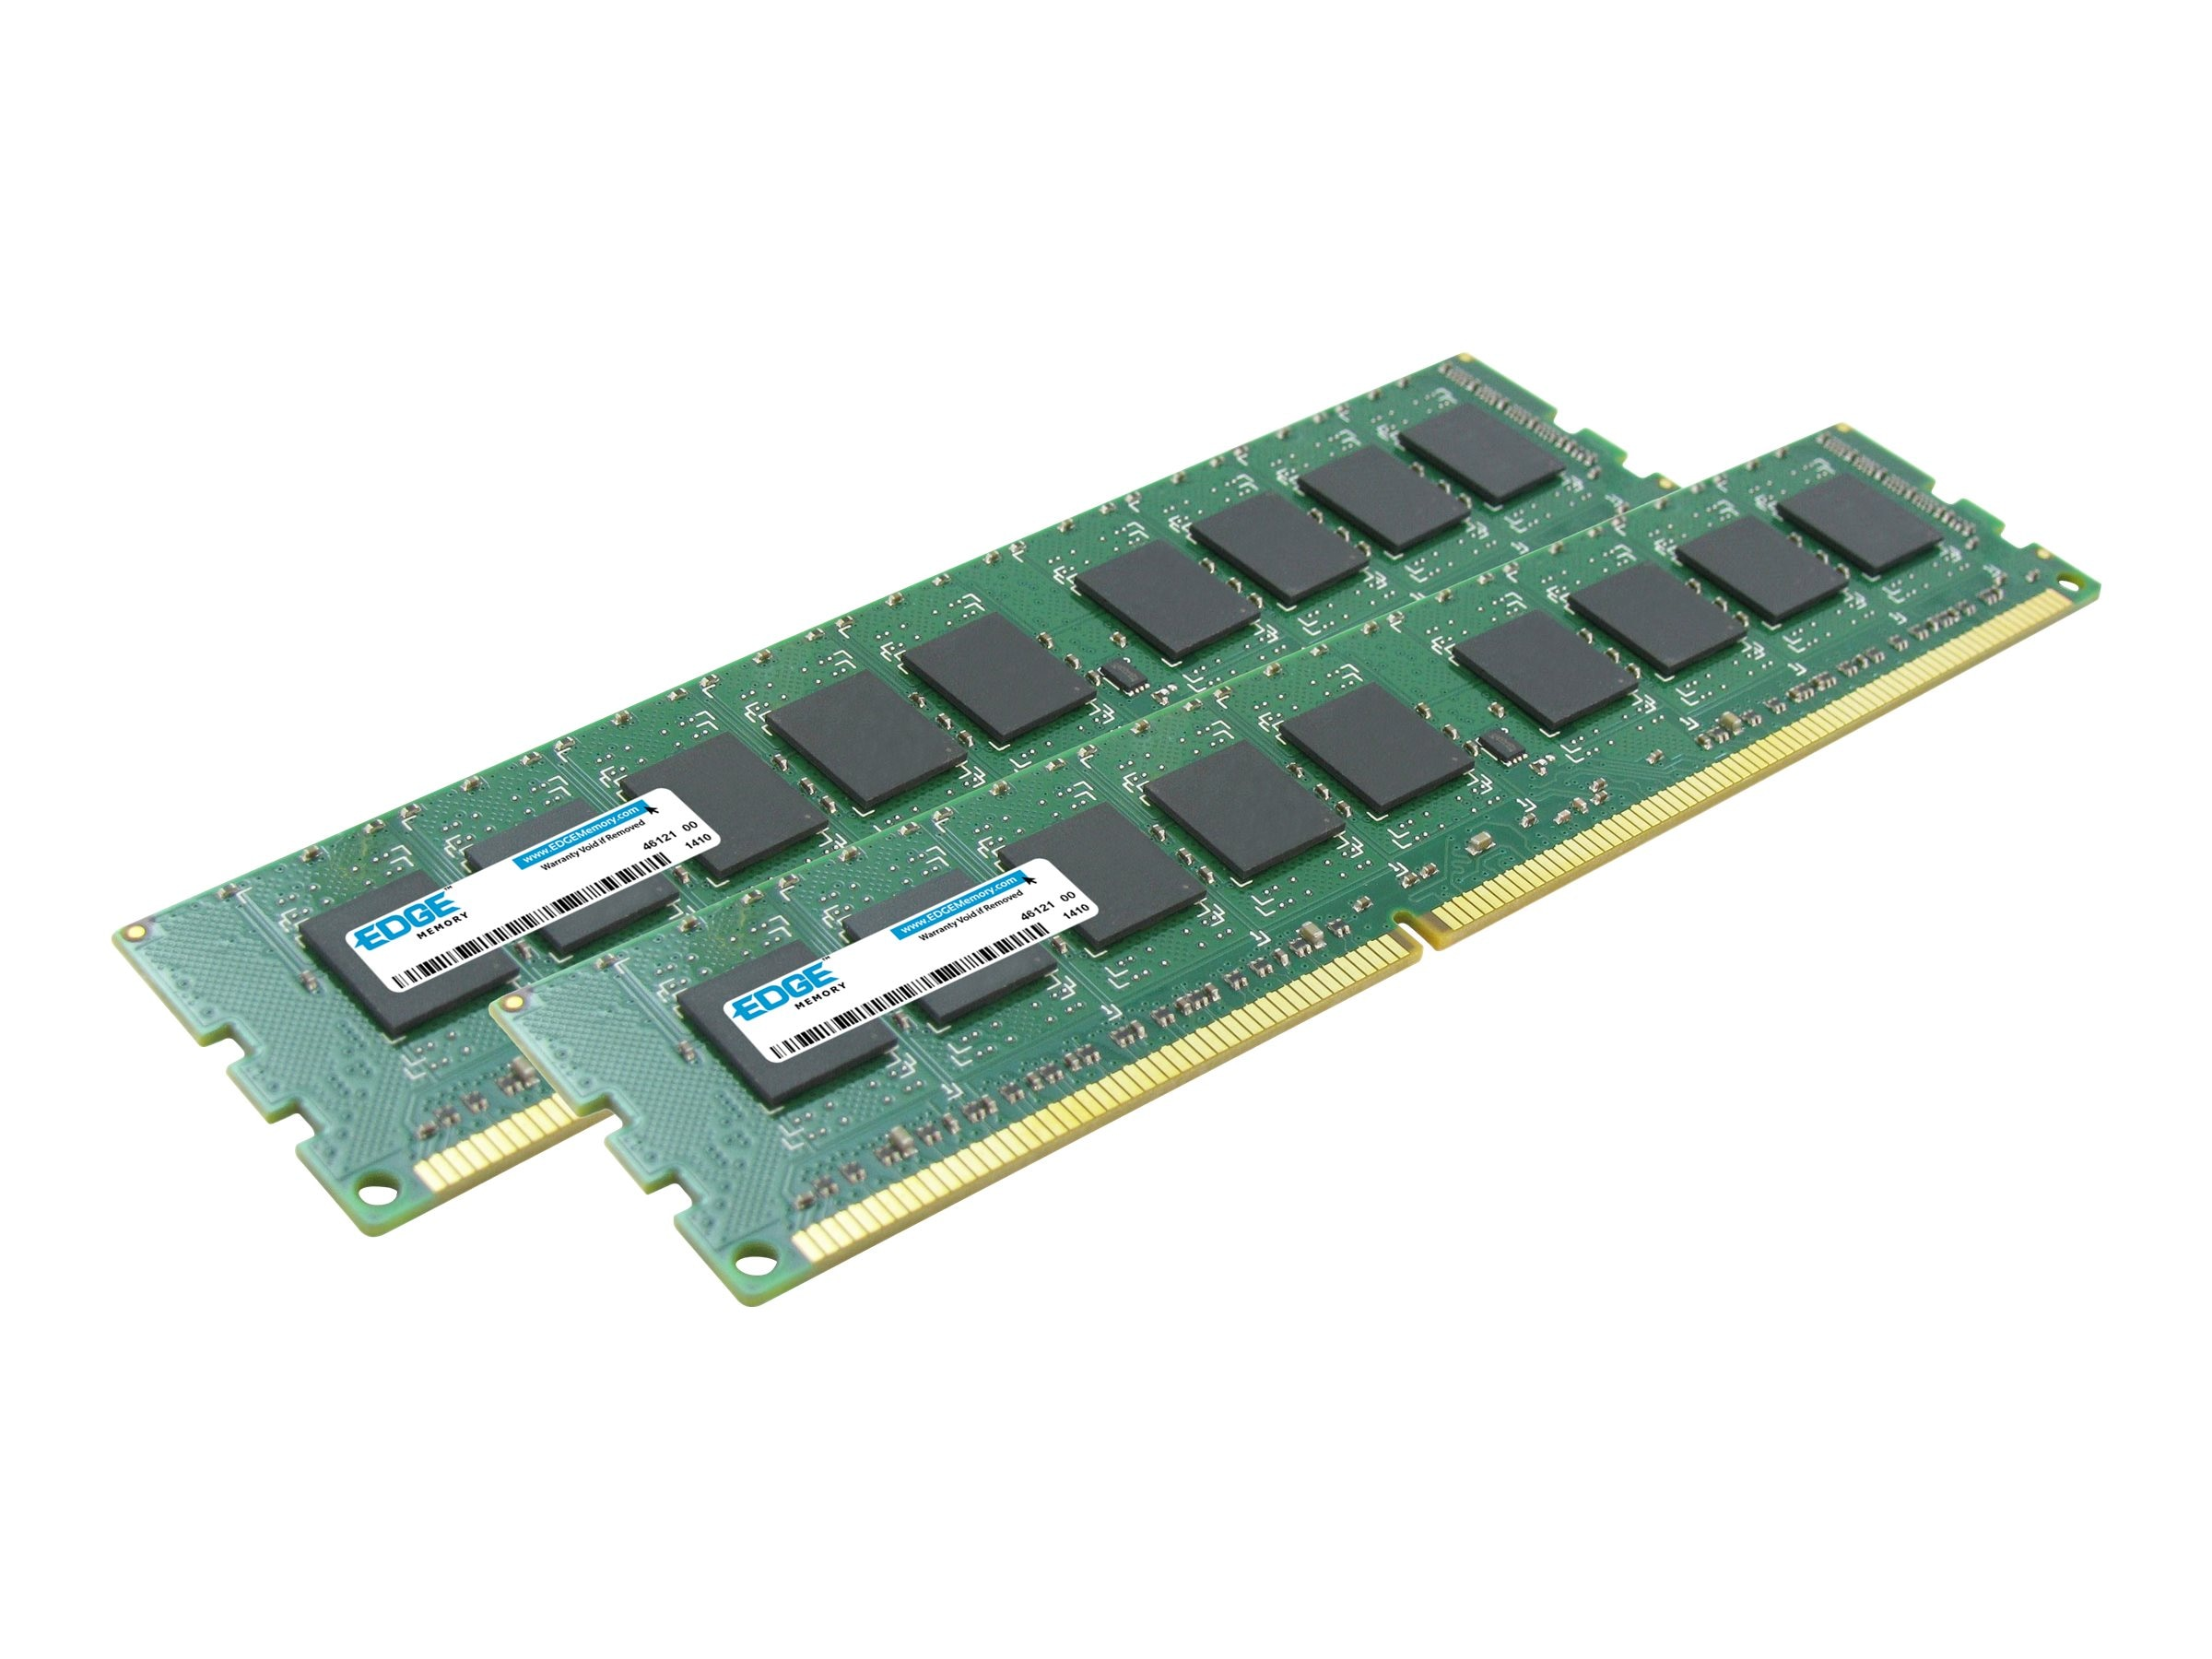 Edge 8GB PC3-10600 240-pin DDR3 SDRAM DIMM Kit